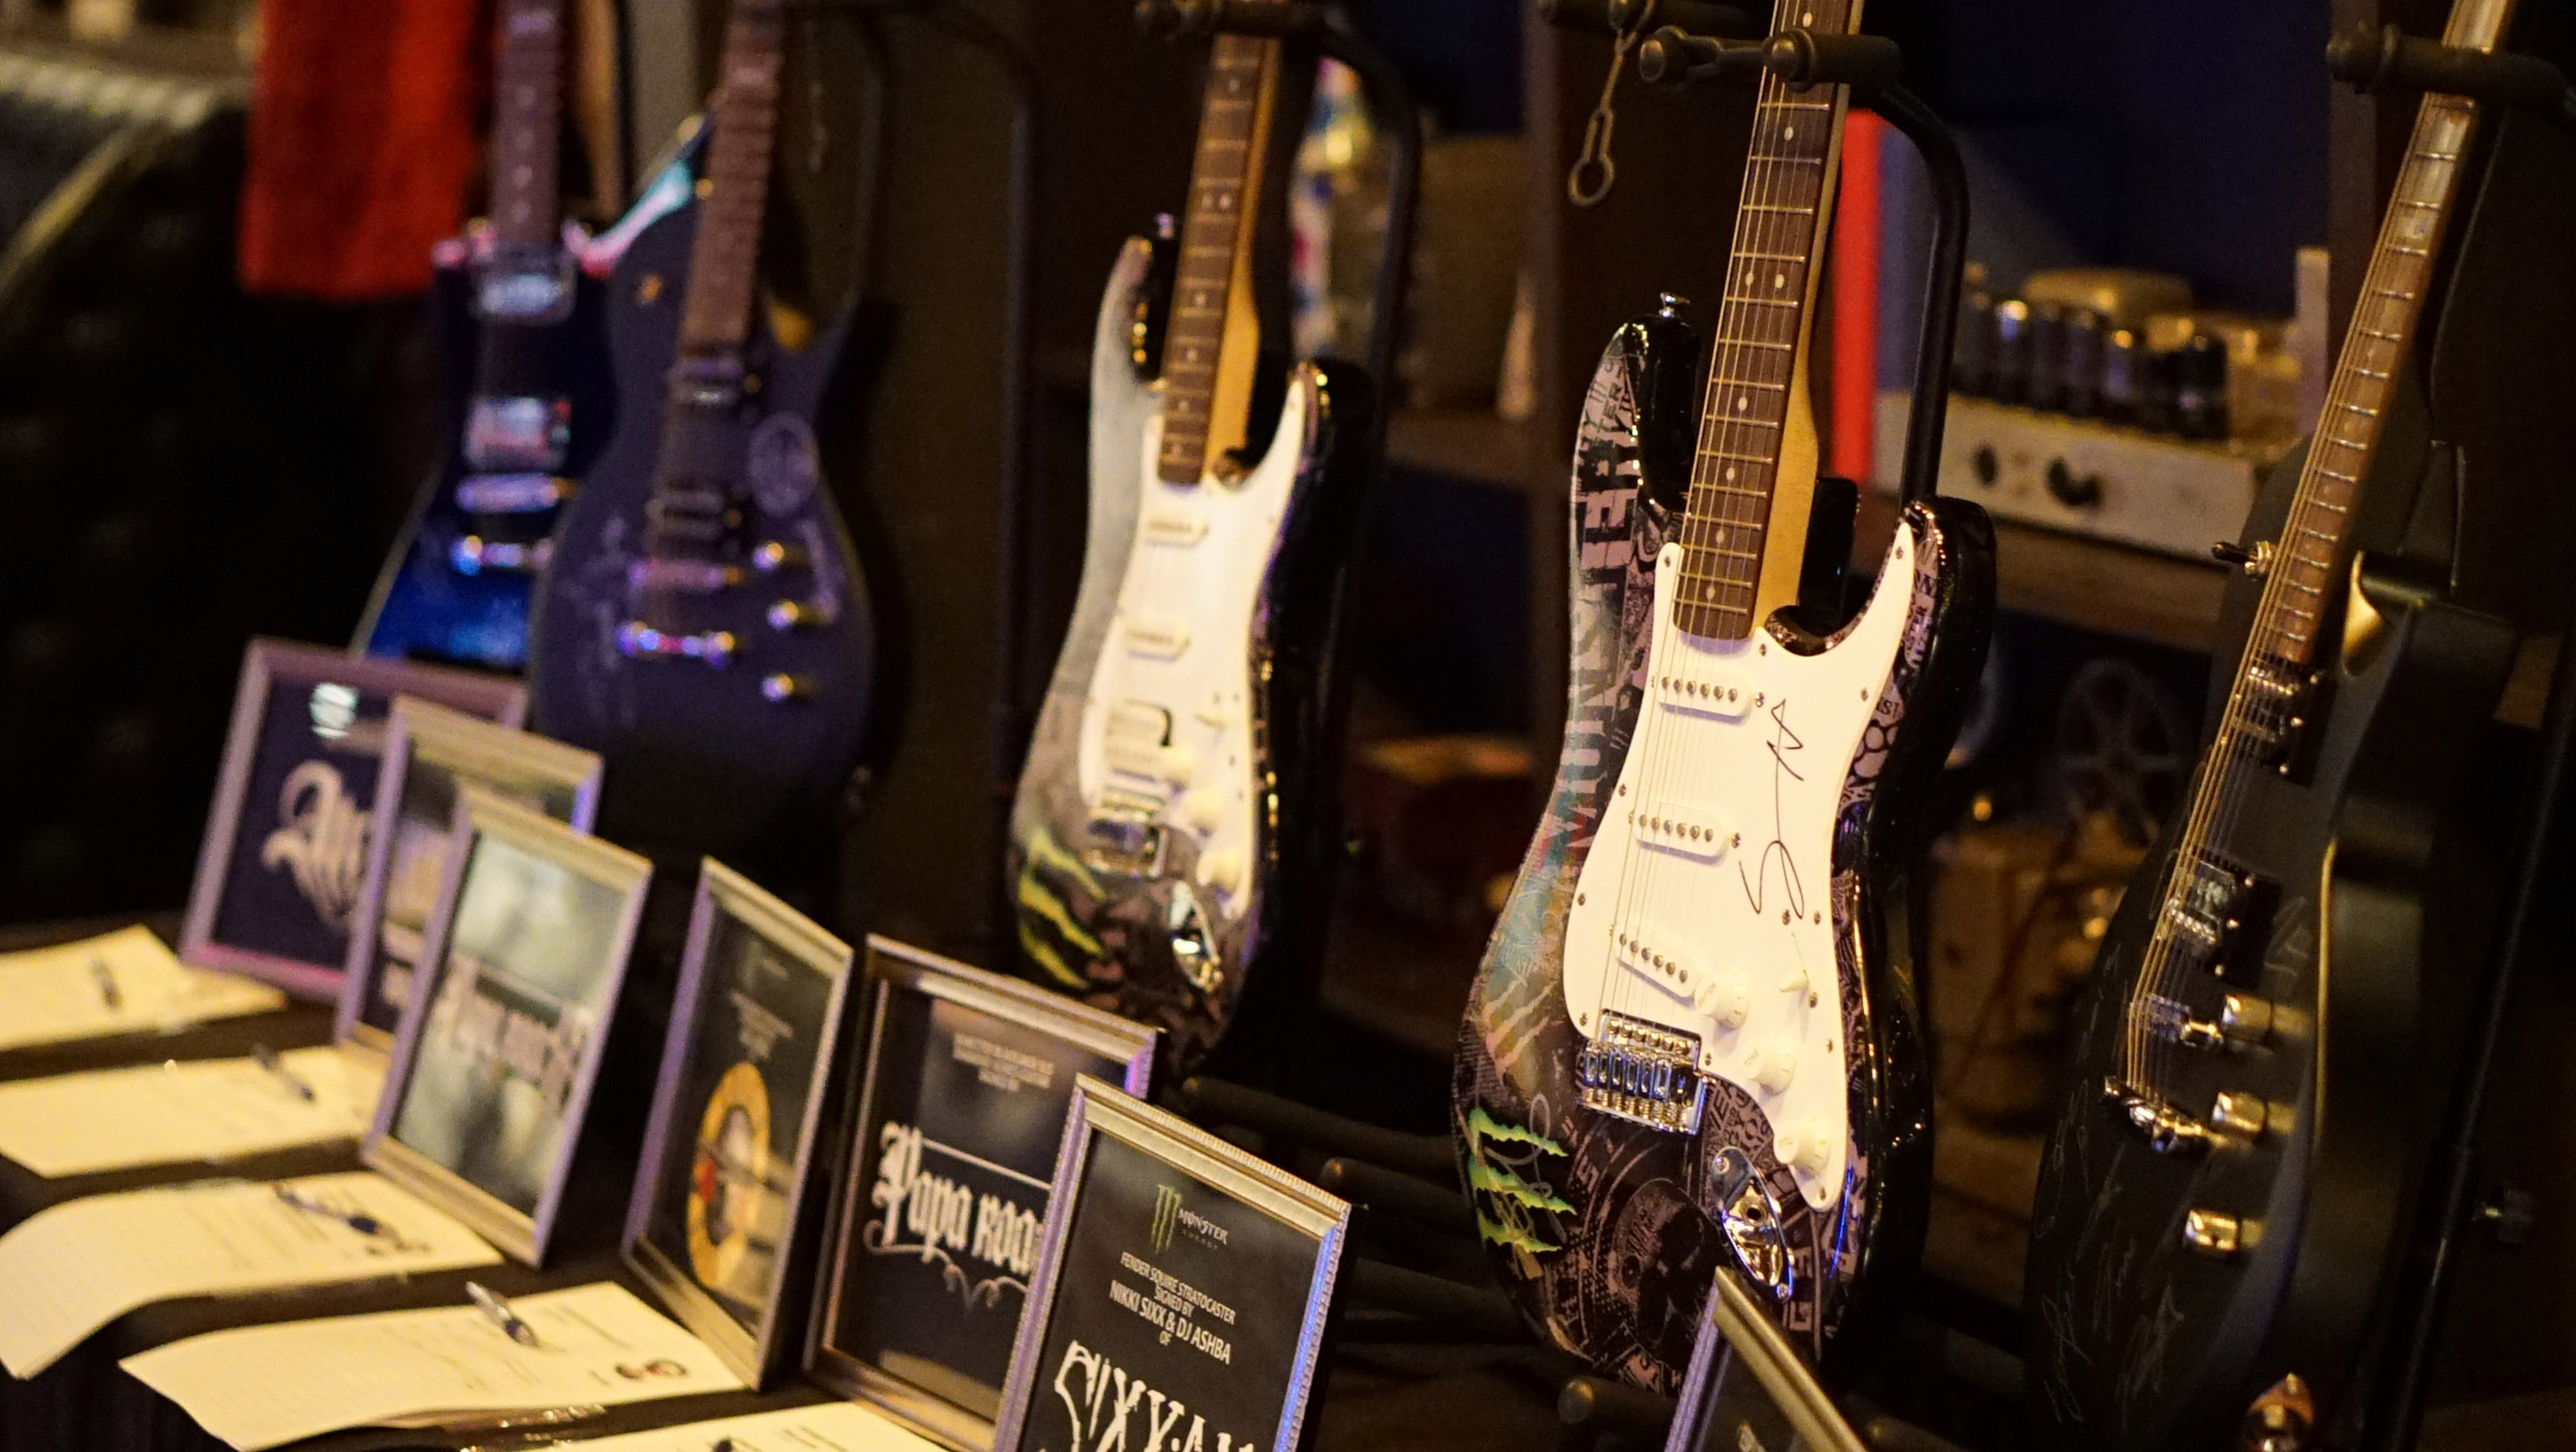 Auction Items - Autographed Guitars -Photo Credit: Linita Sotelo-Masters